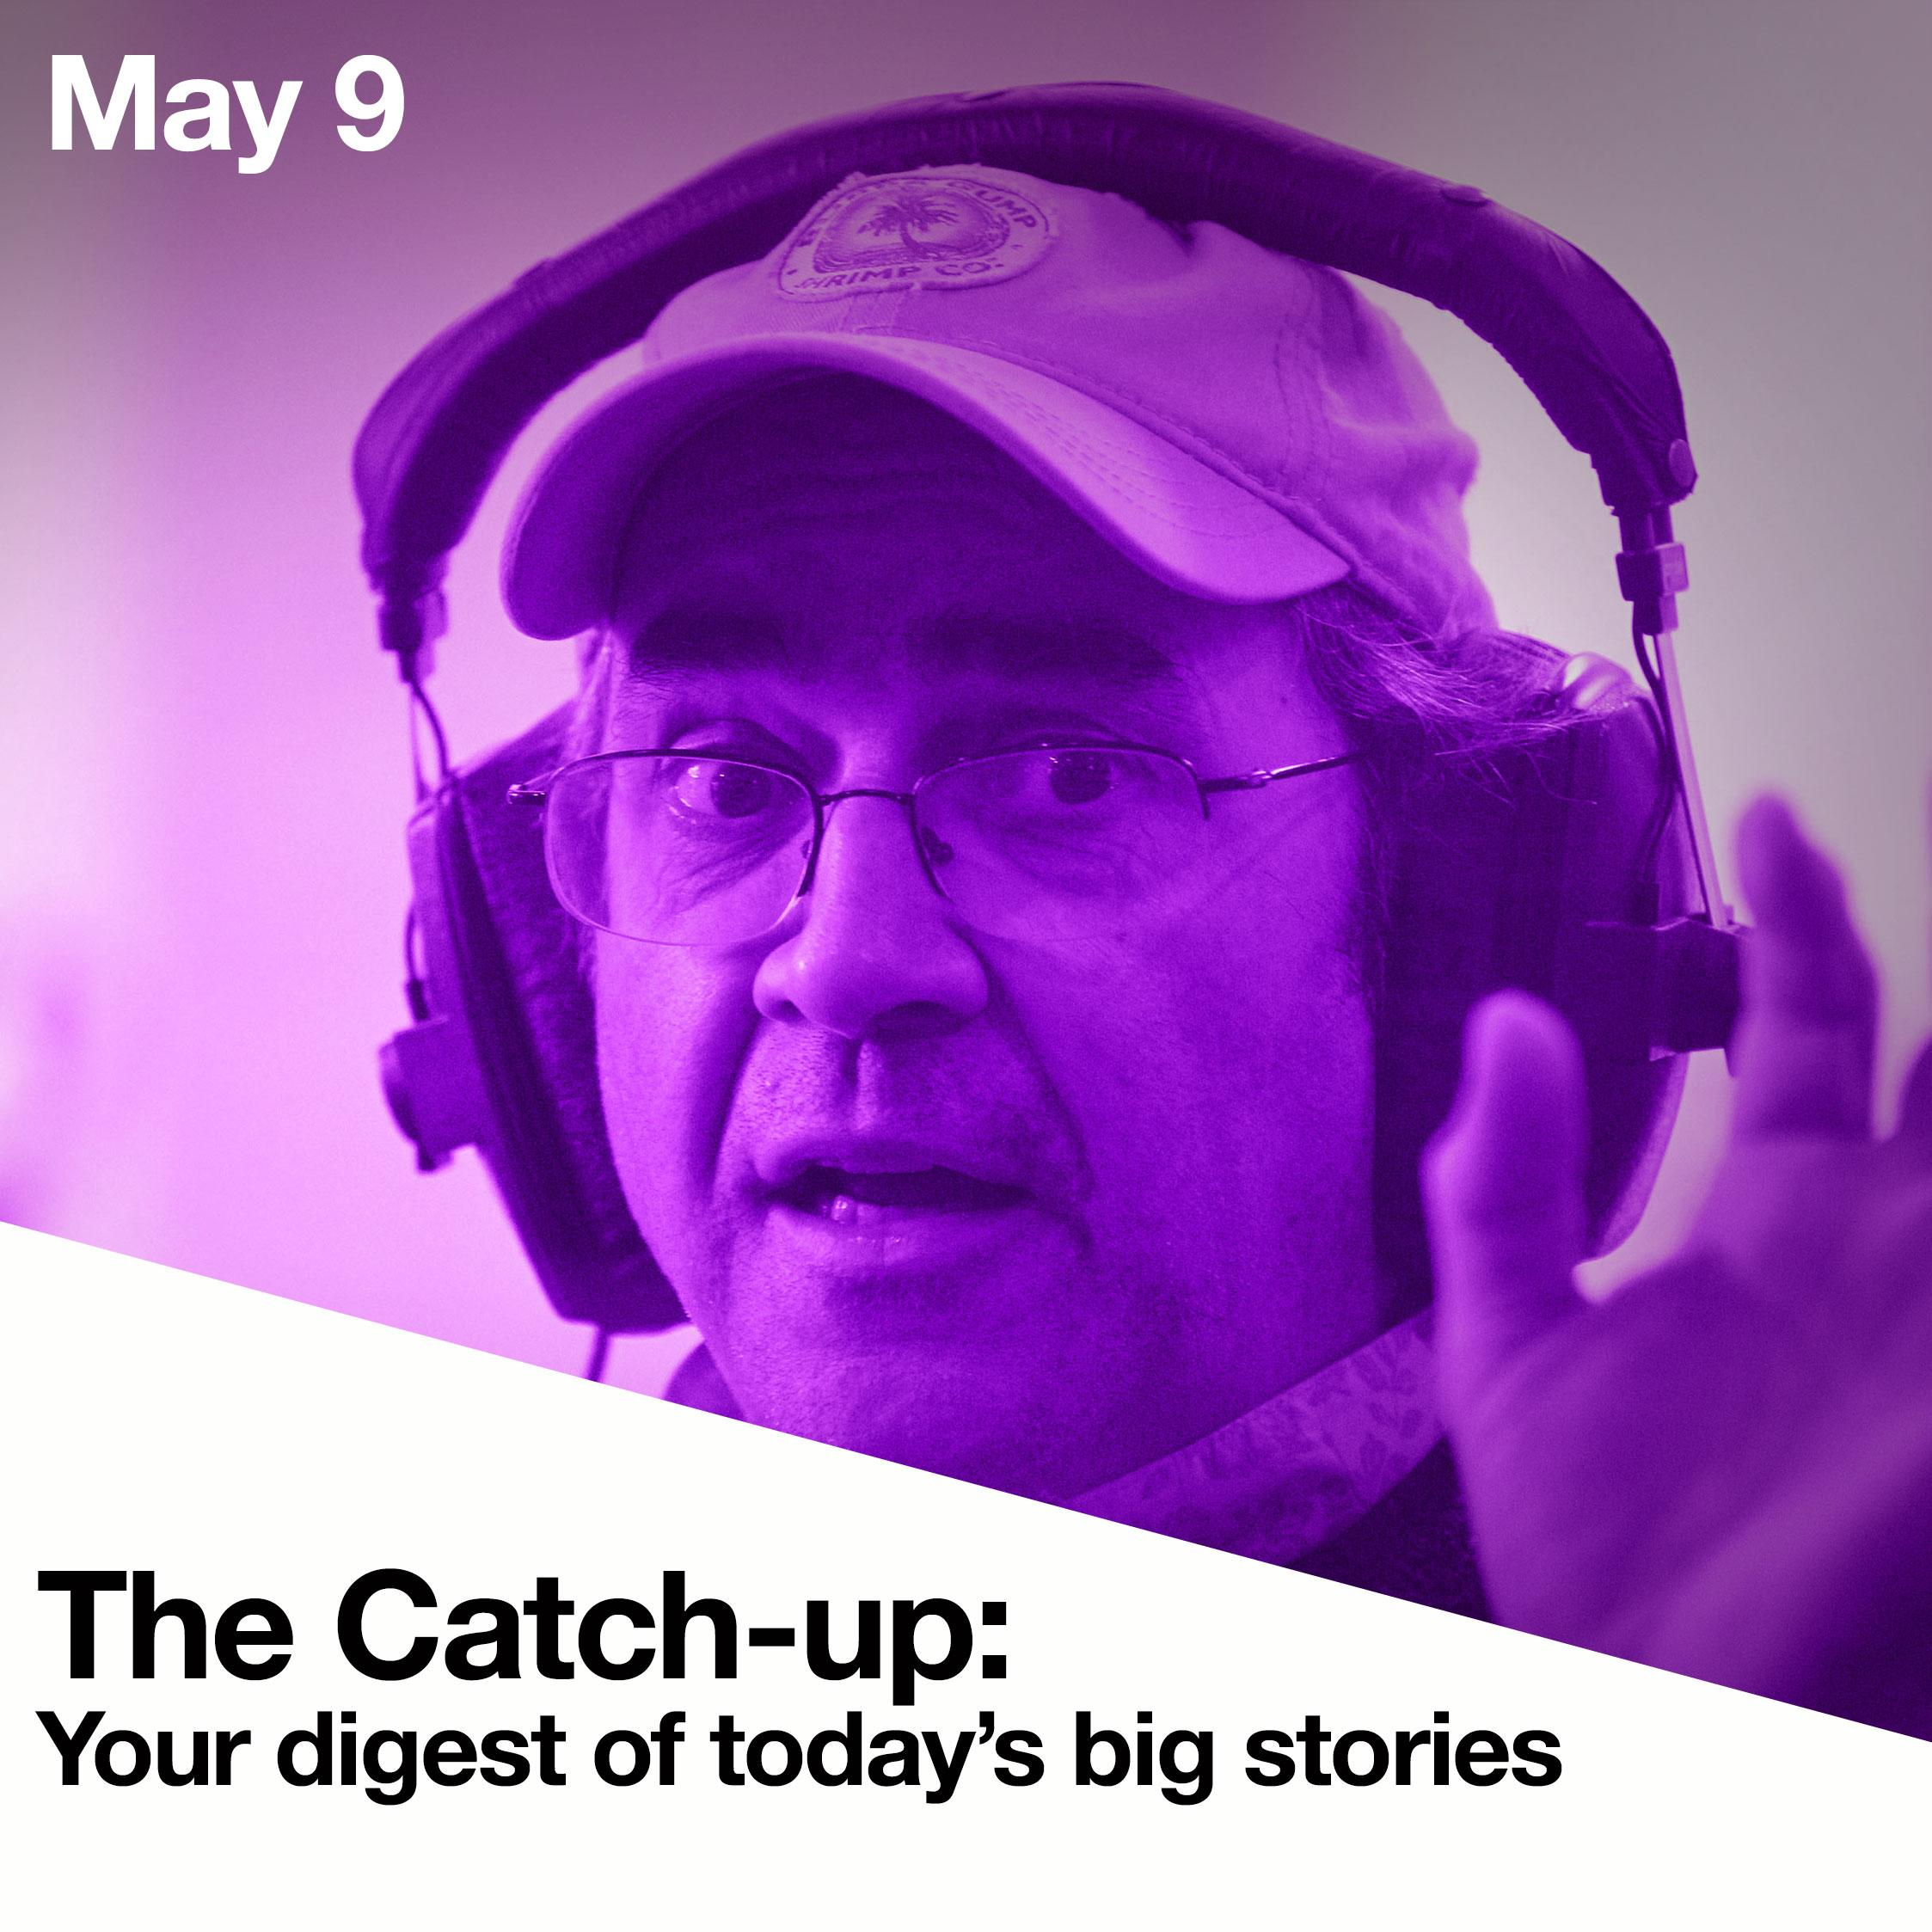 Viral News Danny: The Catch-up: Danny Baker Sacking By BBC Sparks Hypocrisy